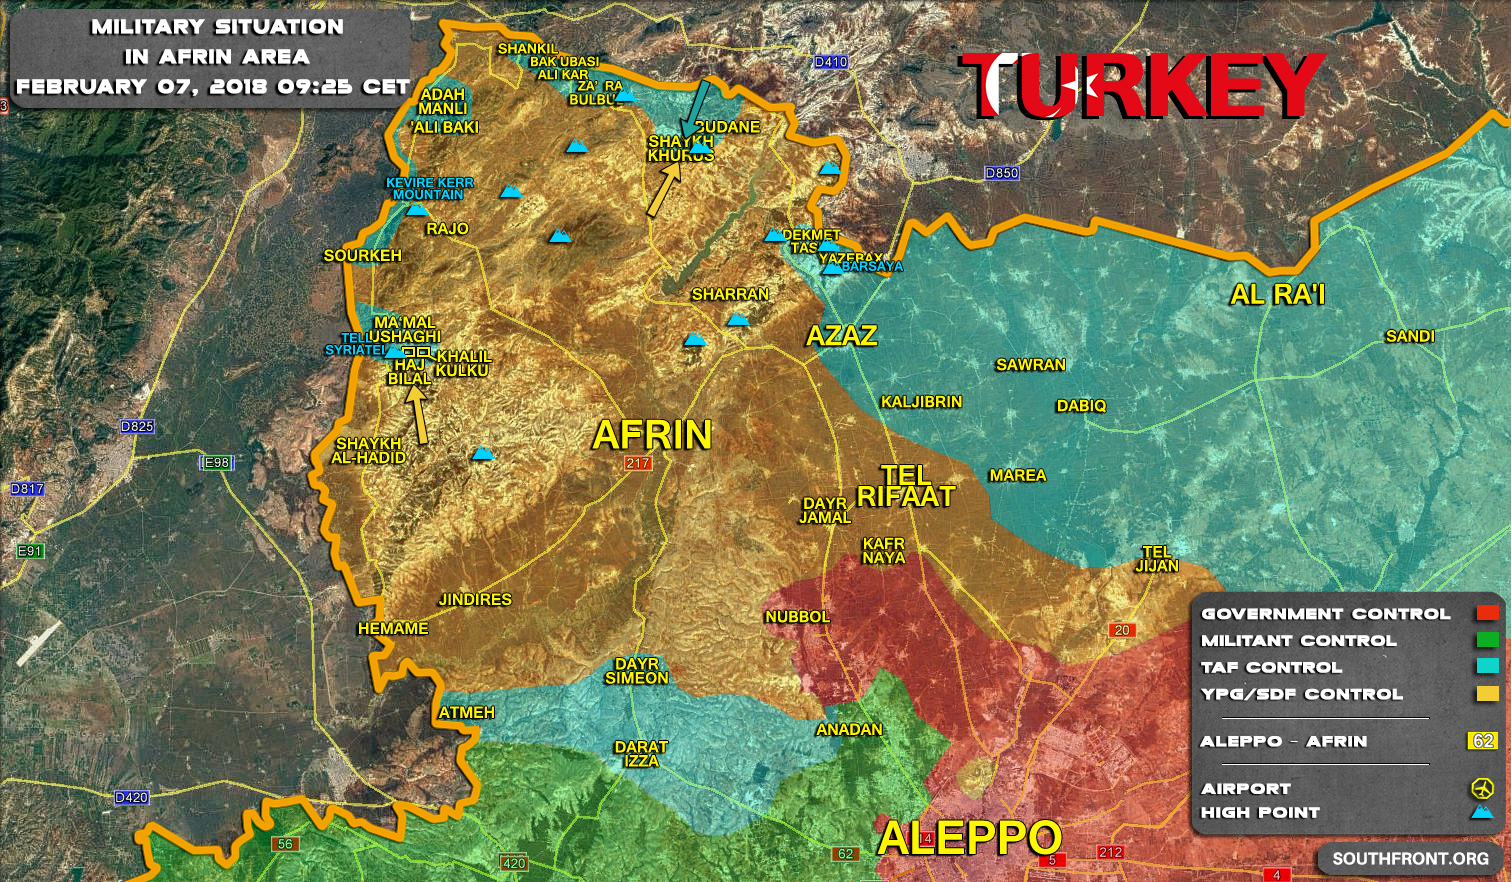 Turkish Forces Advance In Afrin And Claim It Foiled VBIED Attack Of Kurdish Forces (Videos)